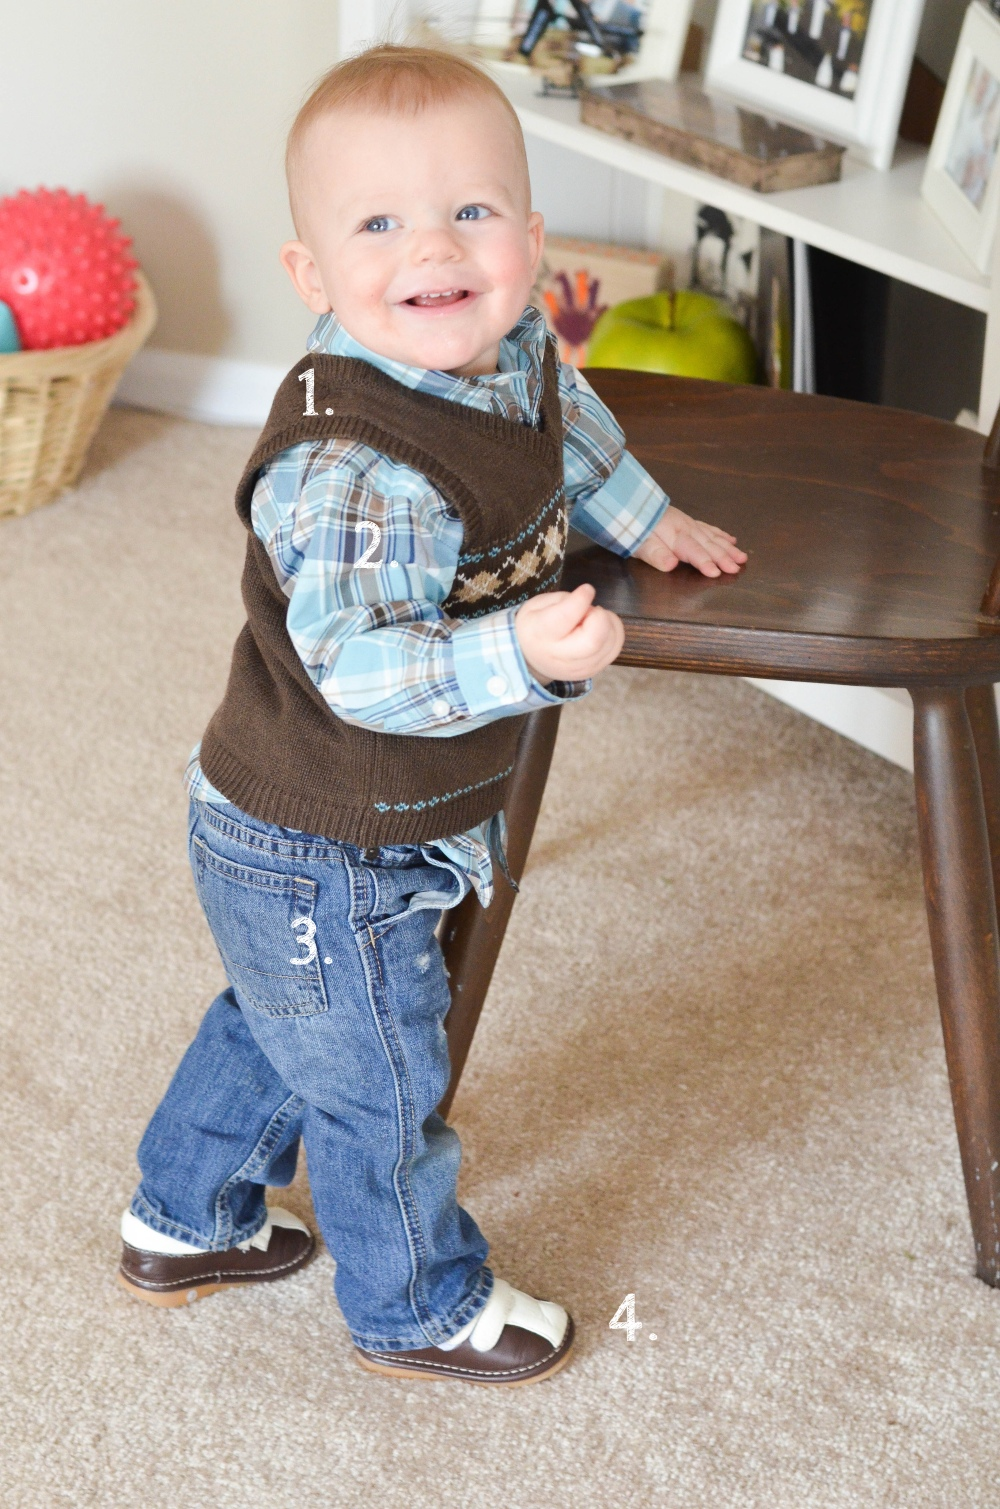 1. Janie and Jack Button Down 2. Janie and Jack Sweatervest (he's confident enough to rock a vest) 3. Gap distressed jeans 4. Zulily squeaker loafers